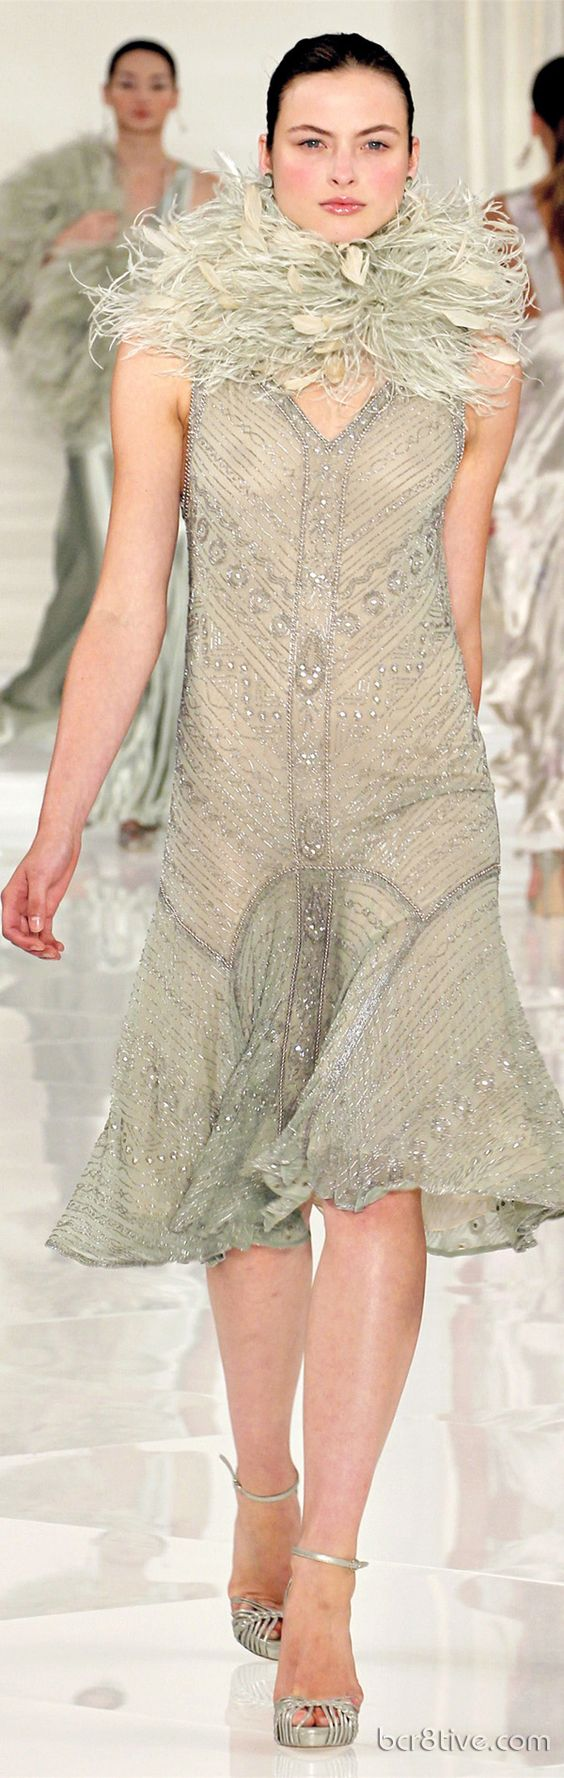 Commemorating a Classic \u0026amp; Timeless Collection \u2013 Ralph Lauren Spring Summer 2012 Haute Couture